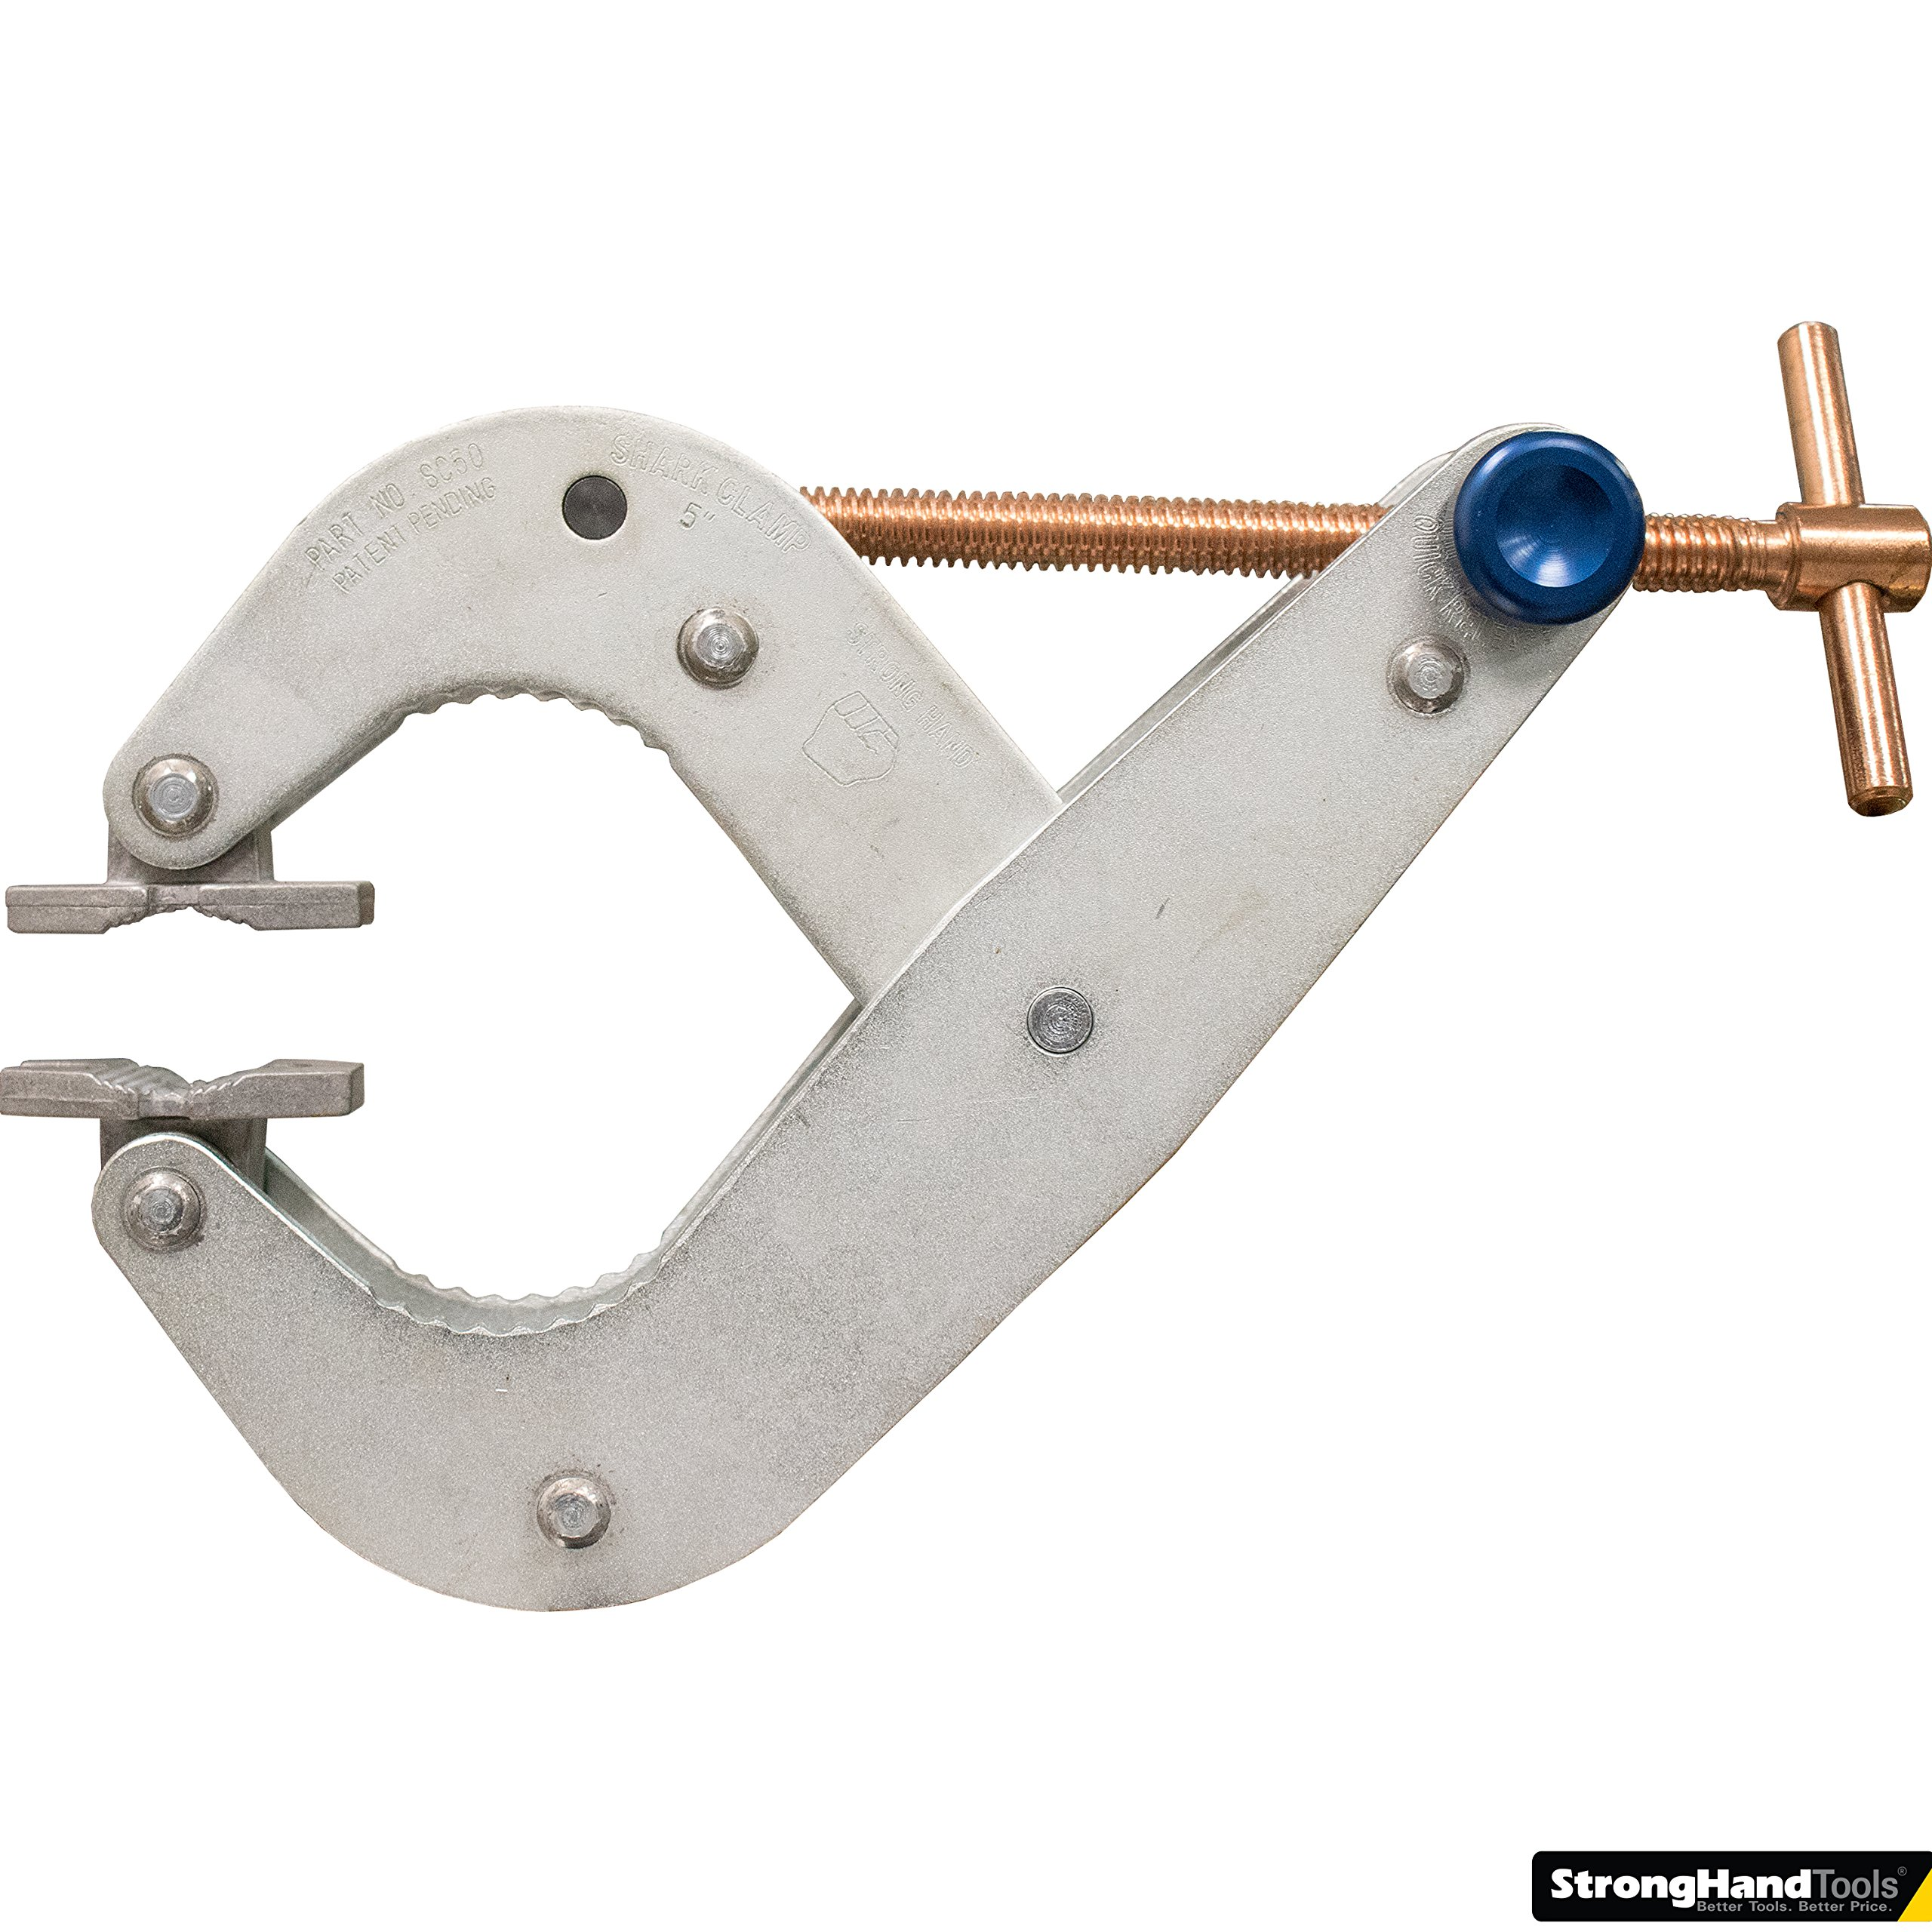 Strong Hand Tools, Shark Clamp, T-Handle, 5'' Capacity, 1,000 Lbs Pressure, SC50 by Strong Hand Tools